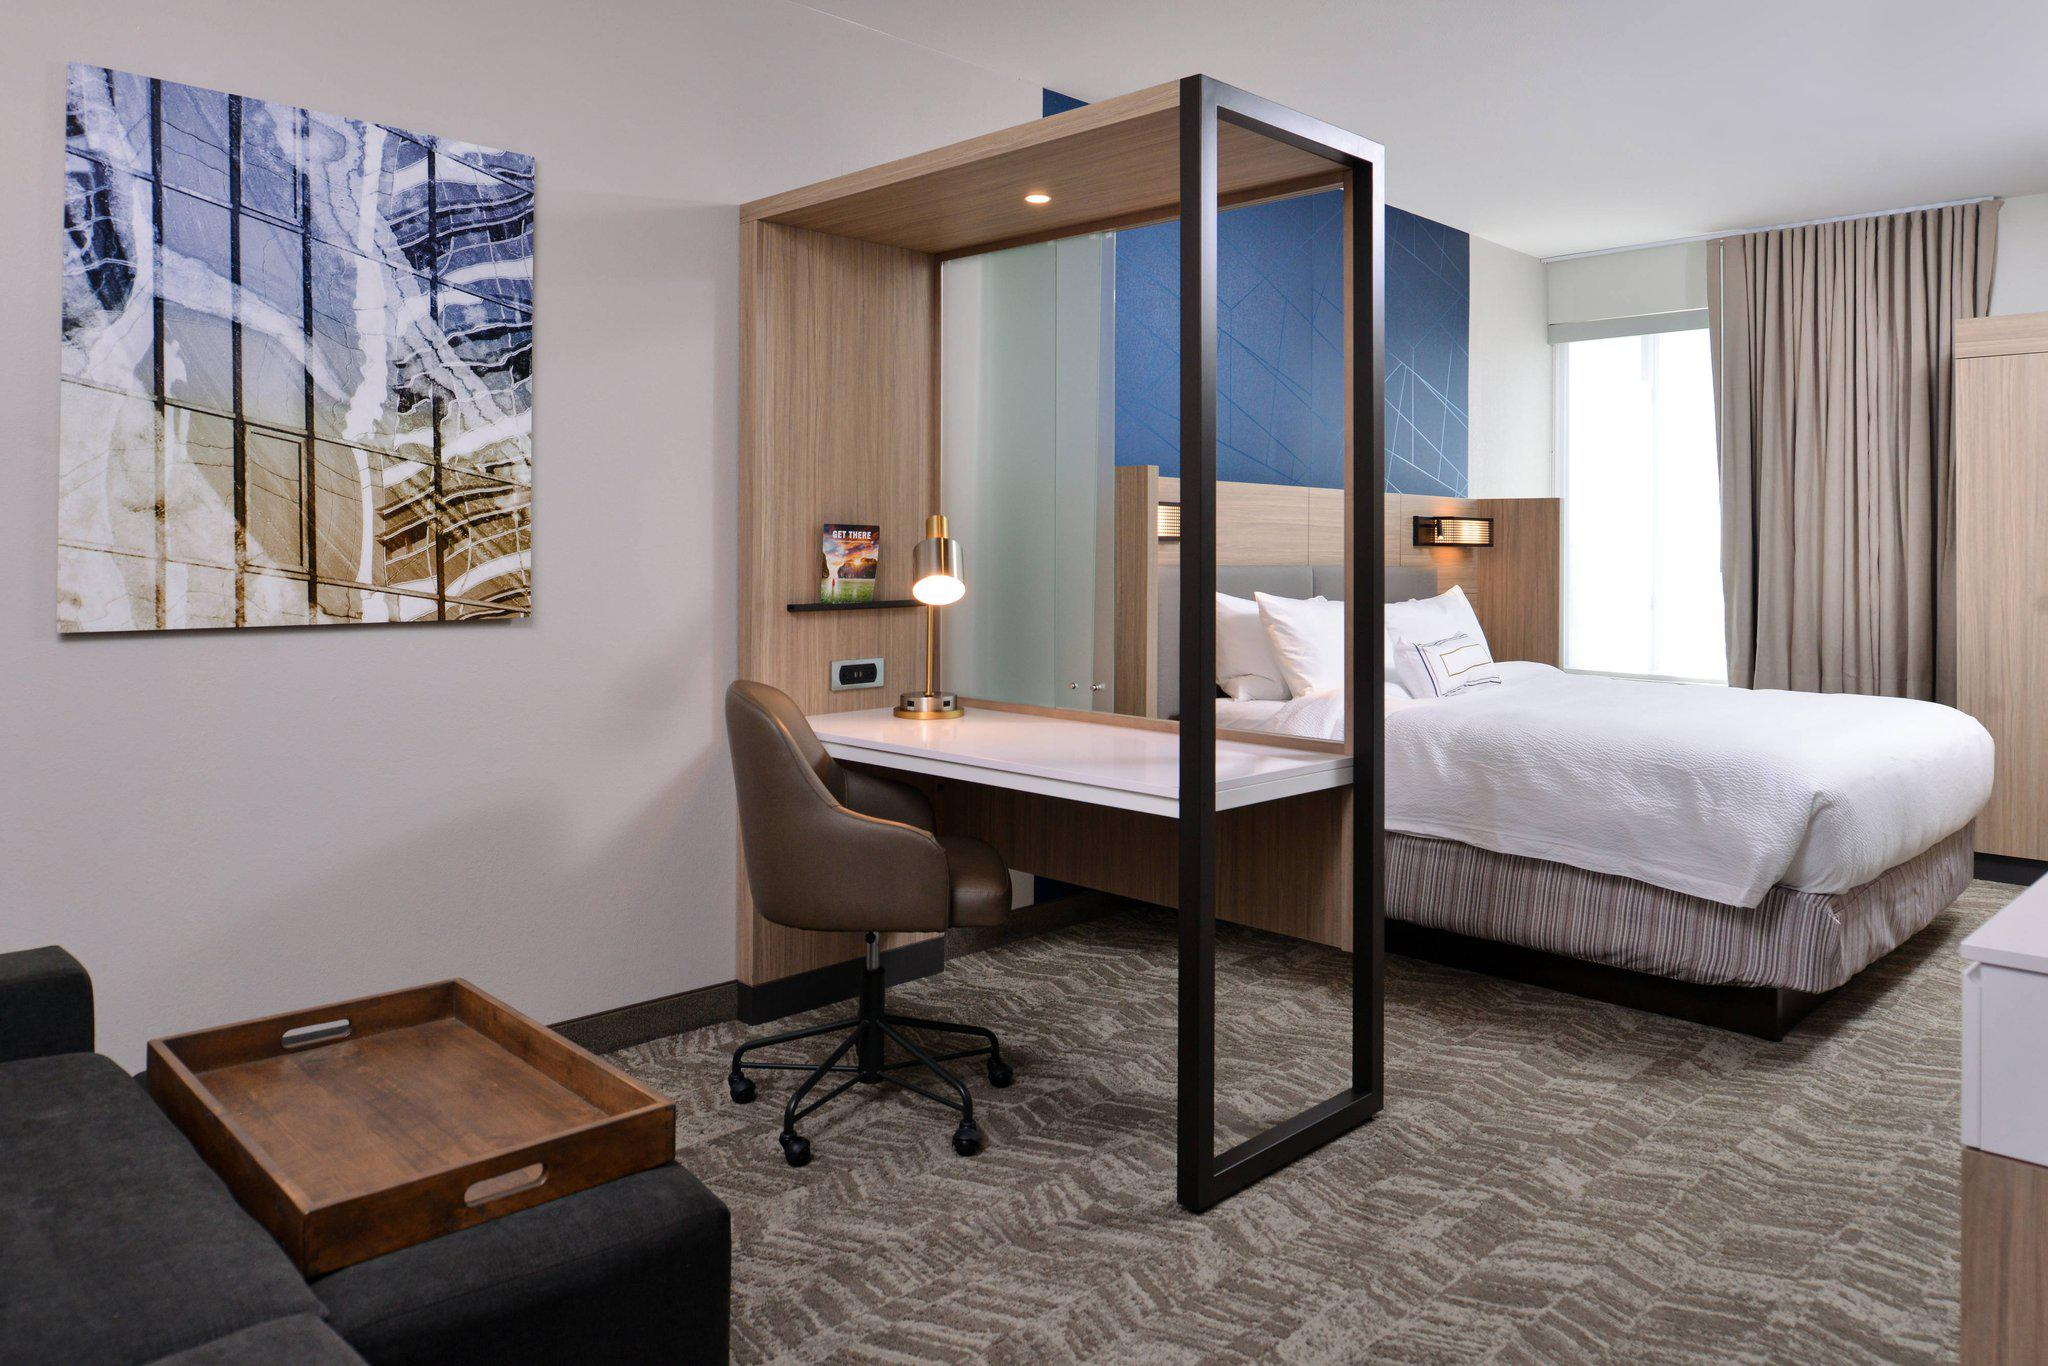 SpringHill Suites by Marriott Springfield Southwest